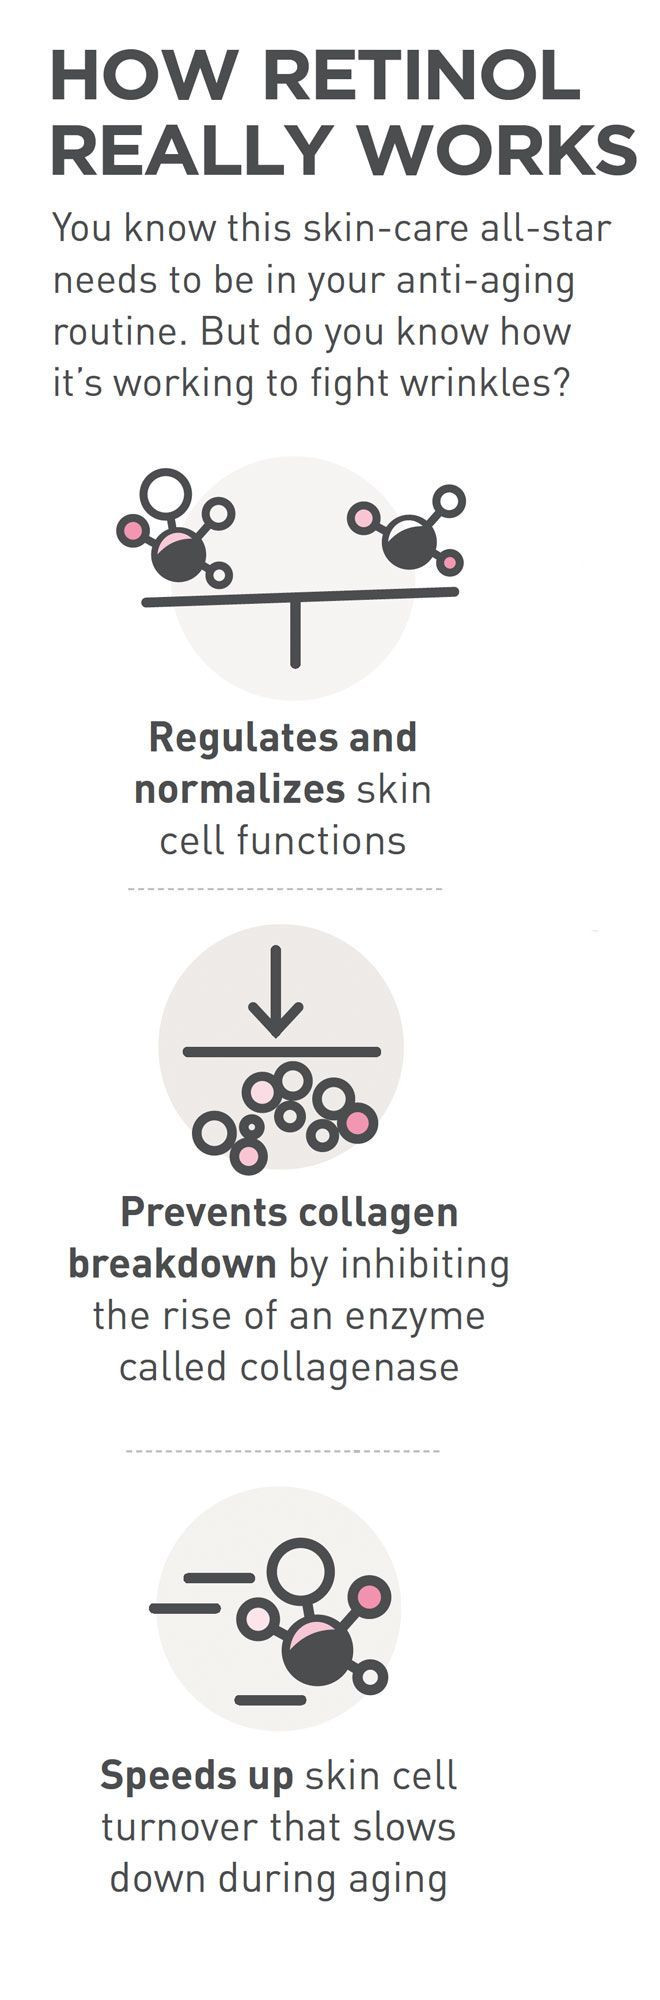 How Retinol really works-simplified